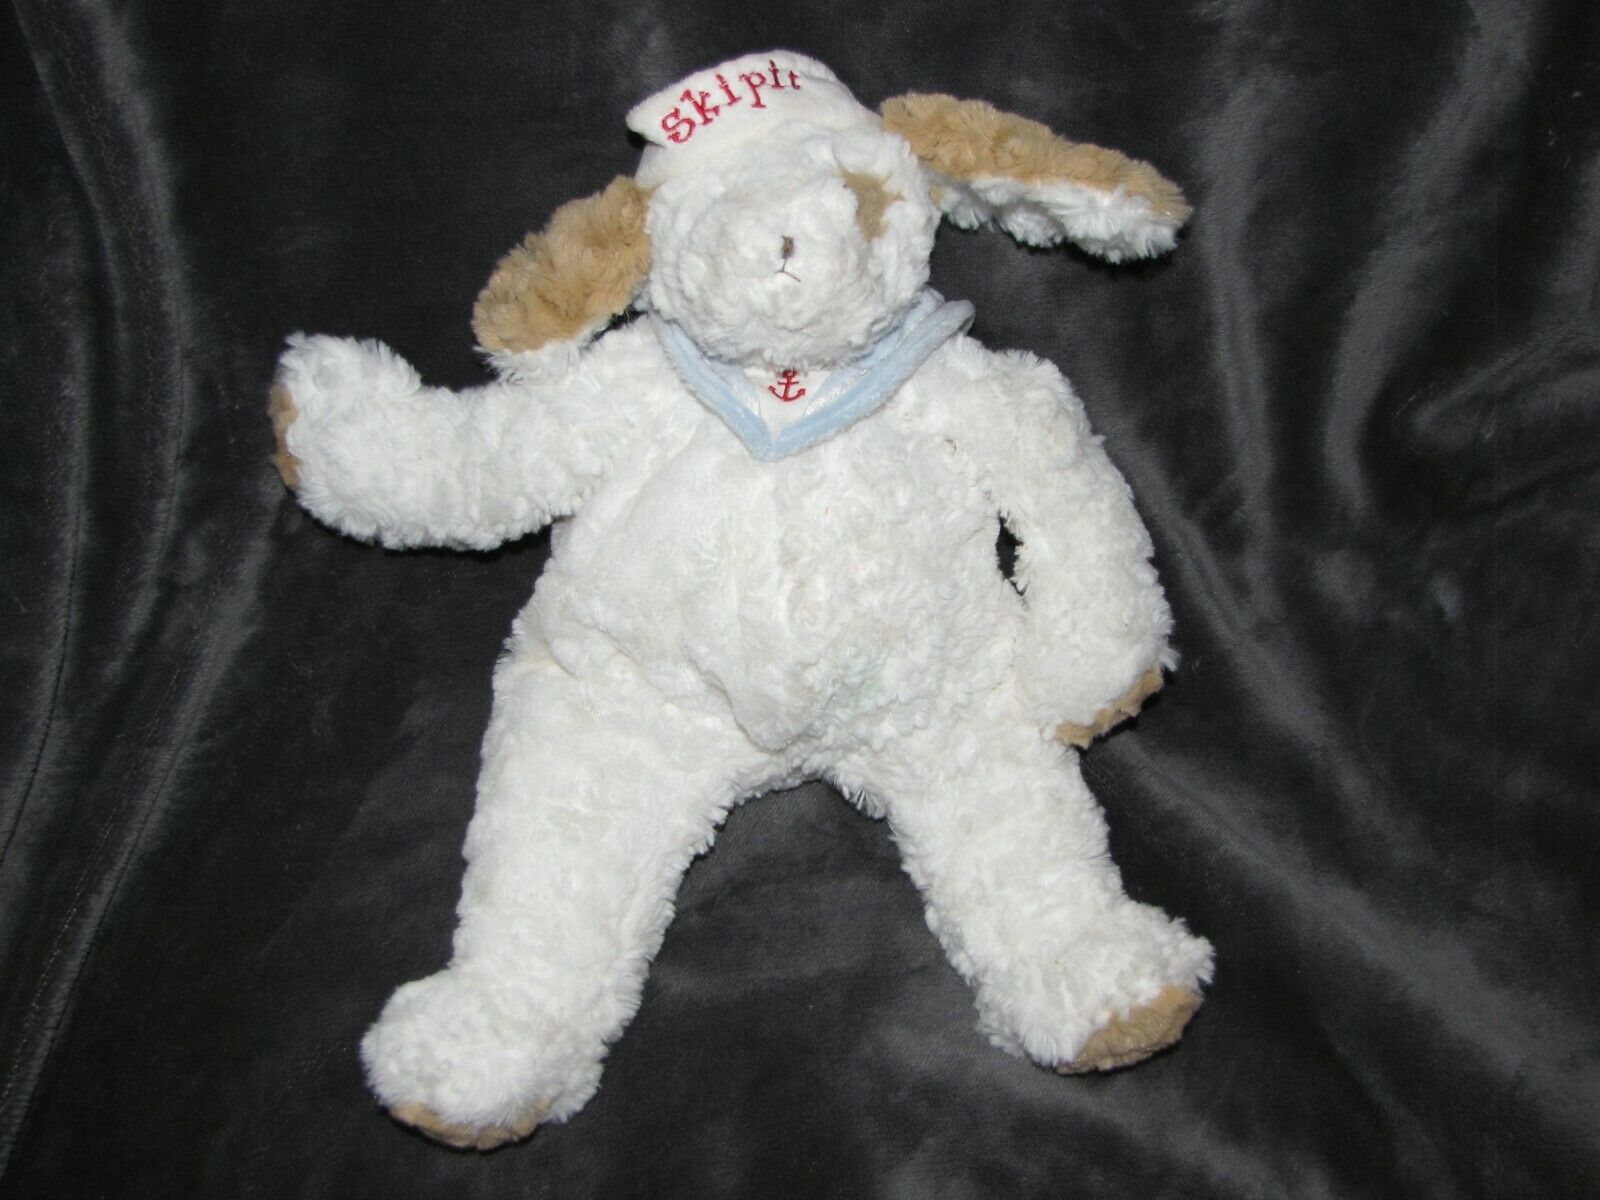 BUNNIES BY THE BAY STUFFED PLUSH SKIPIT PUPPY DOG NAUTICAL SAILOR ANCHOR BEANS